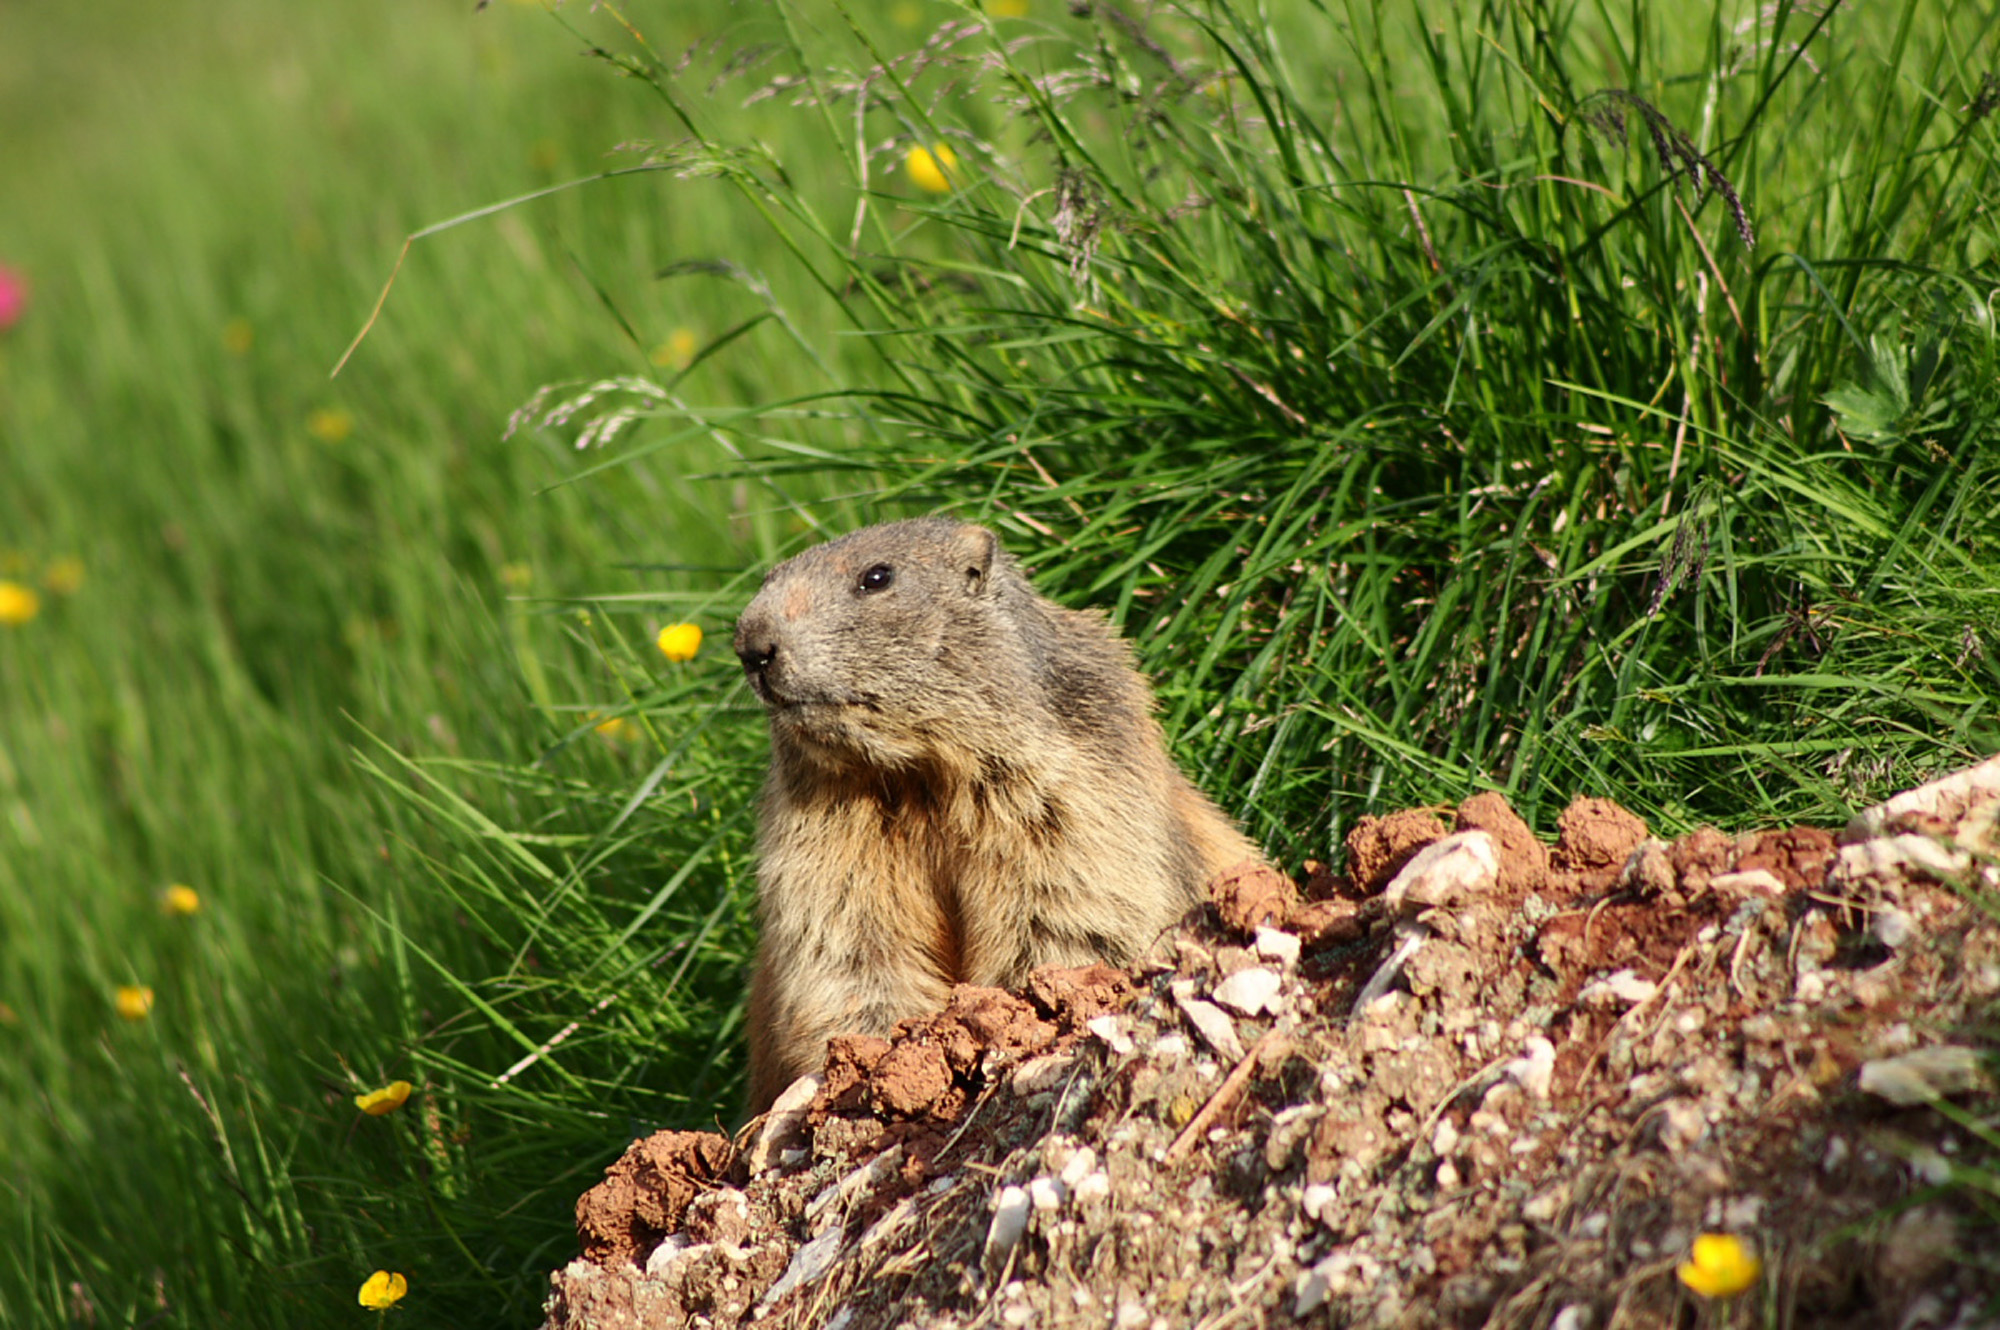 Marmots are a common sight at Cinque Torri and due to the number of tourists they are very tame (and cheeky!). Nikon D810, 80-400mm at 300mm, ISO 200, 1/320s at f/5.6. July. ©James Rushforth